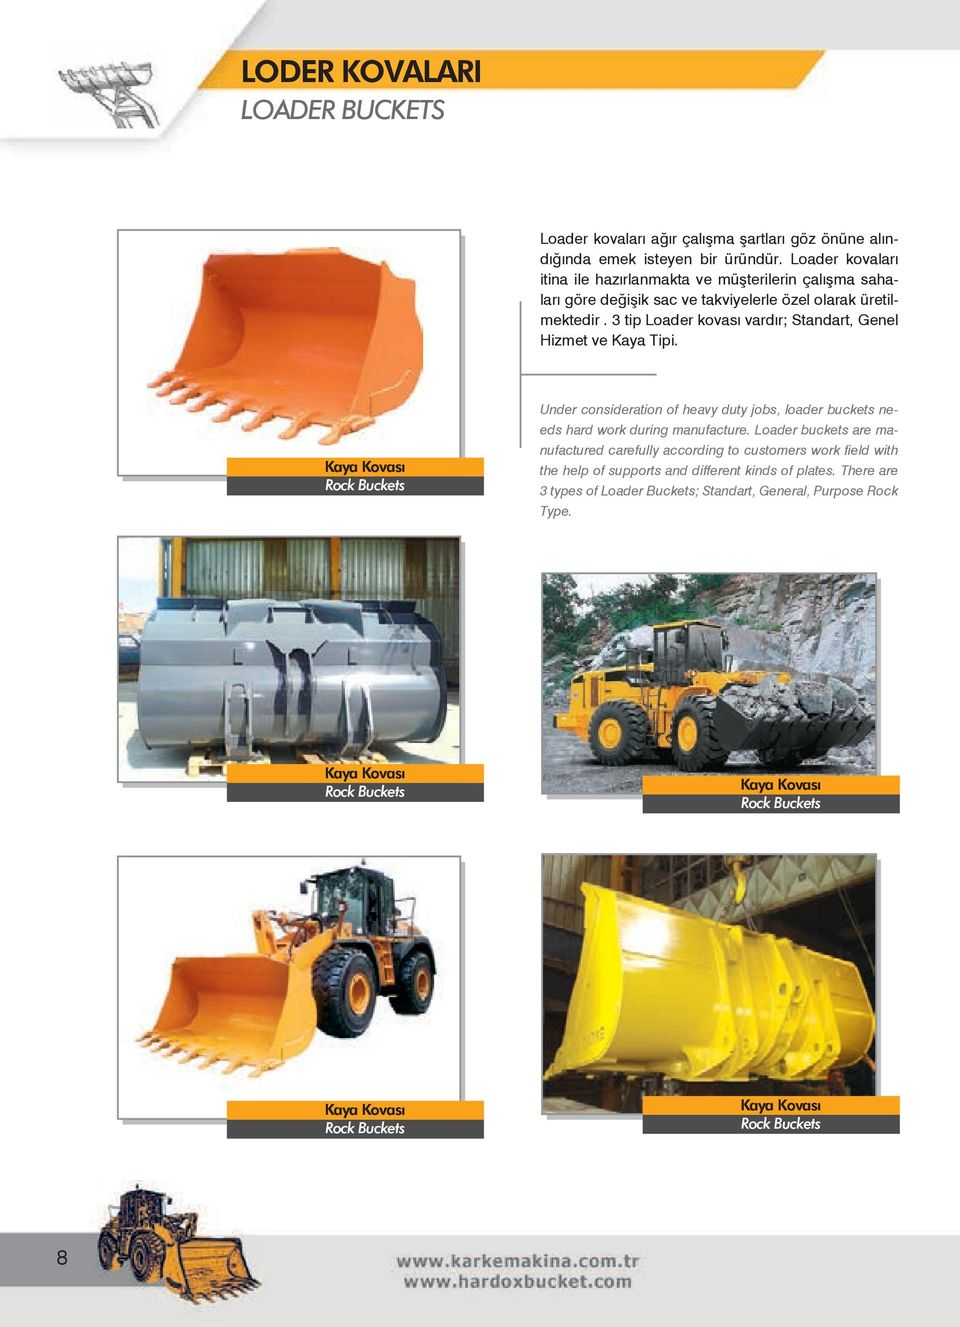 3 tip Loader kovası vardır; Standart, Genel Hizmet ve Kaya Tipi. Kaya Kovası Rock Buckets Under consideration of heavy duty jobs, loader buckets needs hard work during manufacture.